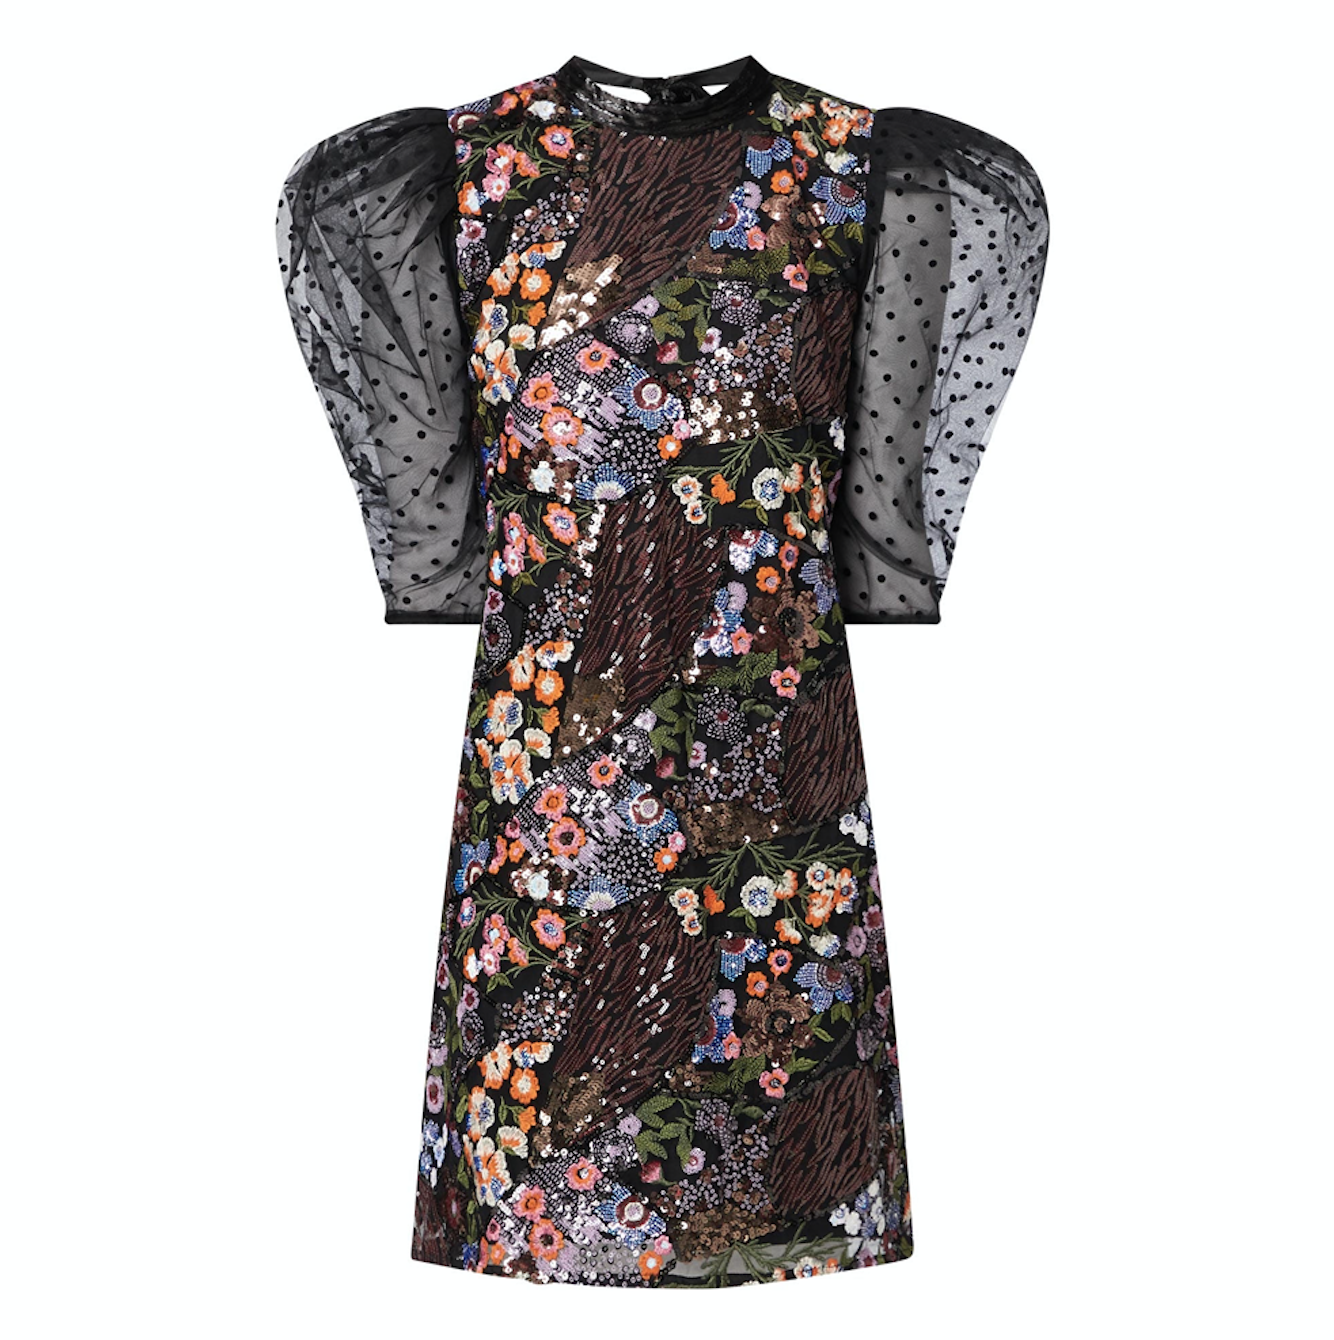 Fee G Sequin Embroidered Midi Dress €265